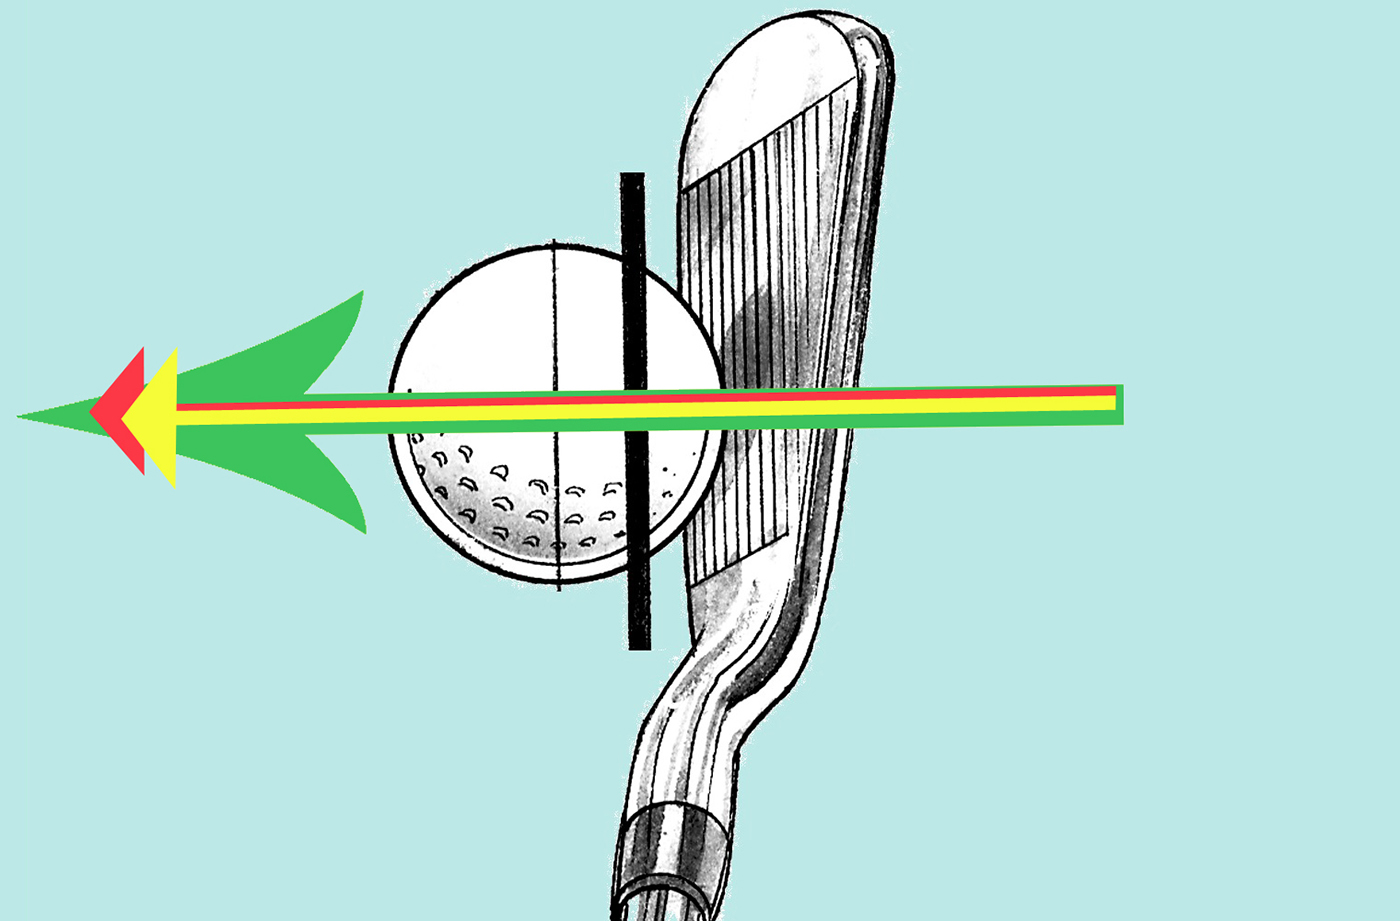 A Square Golf Club Face Angle Really is Open, or Not